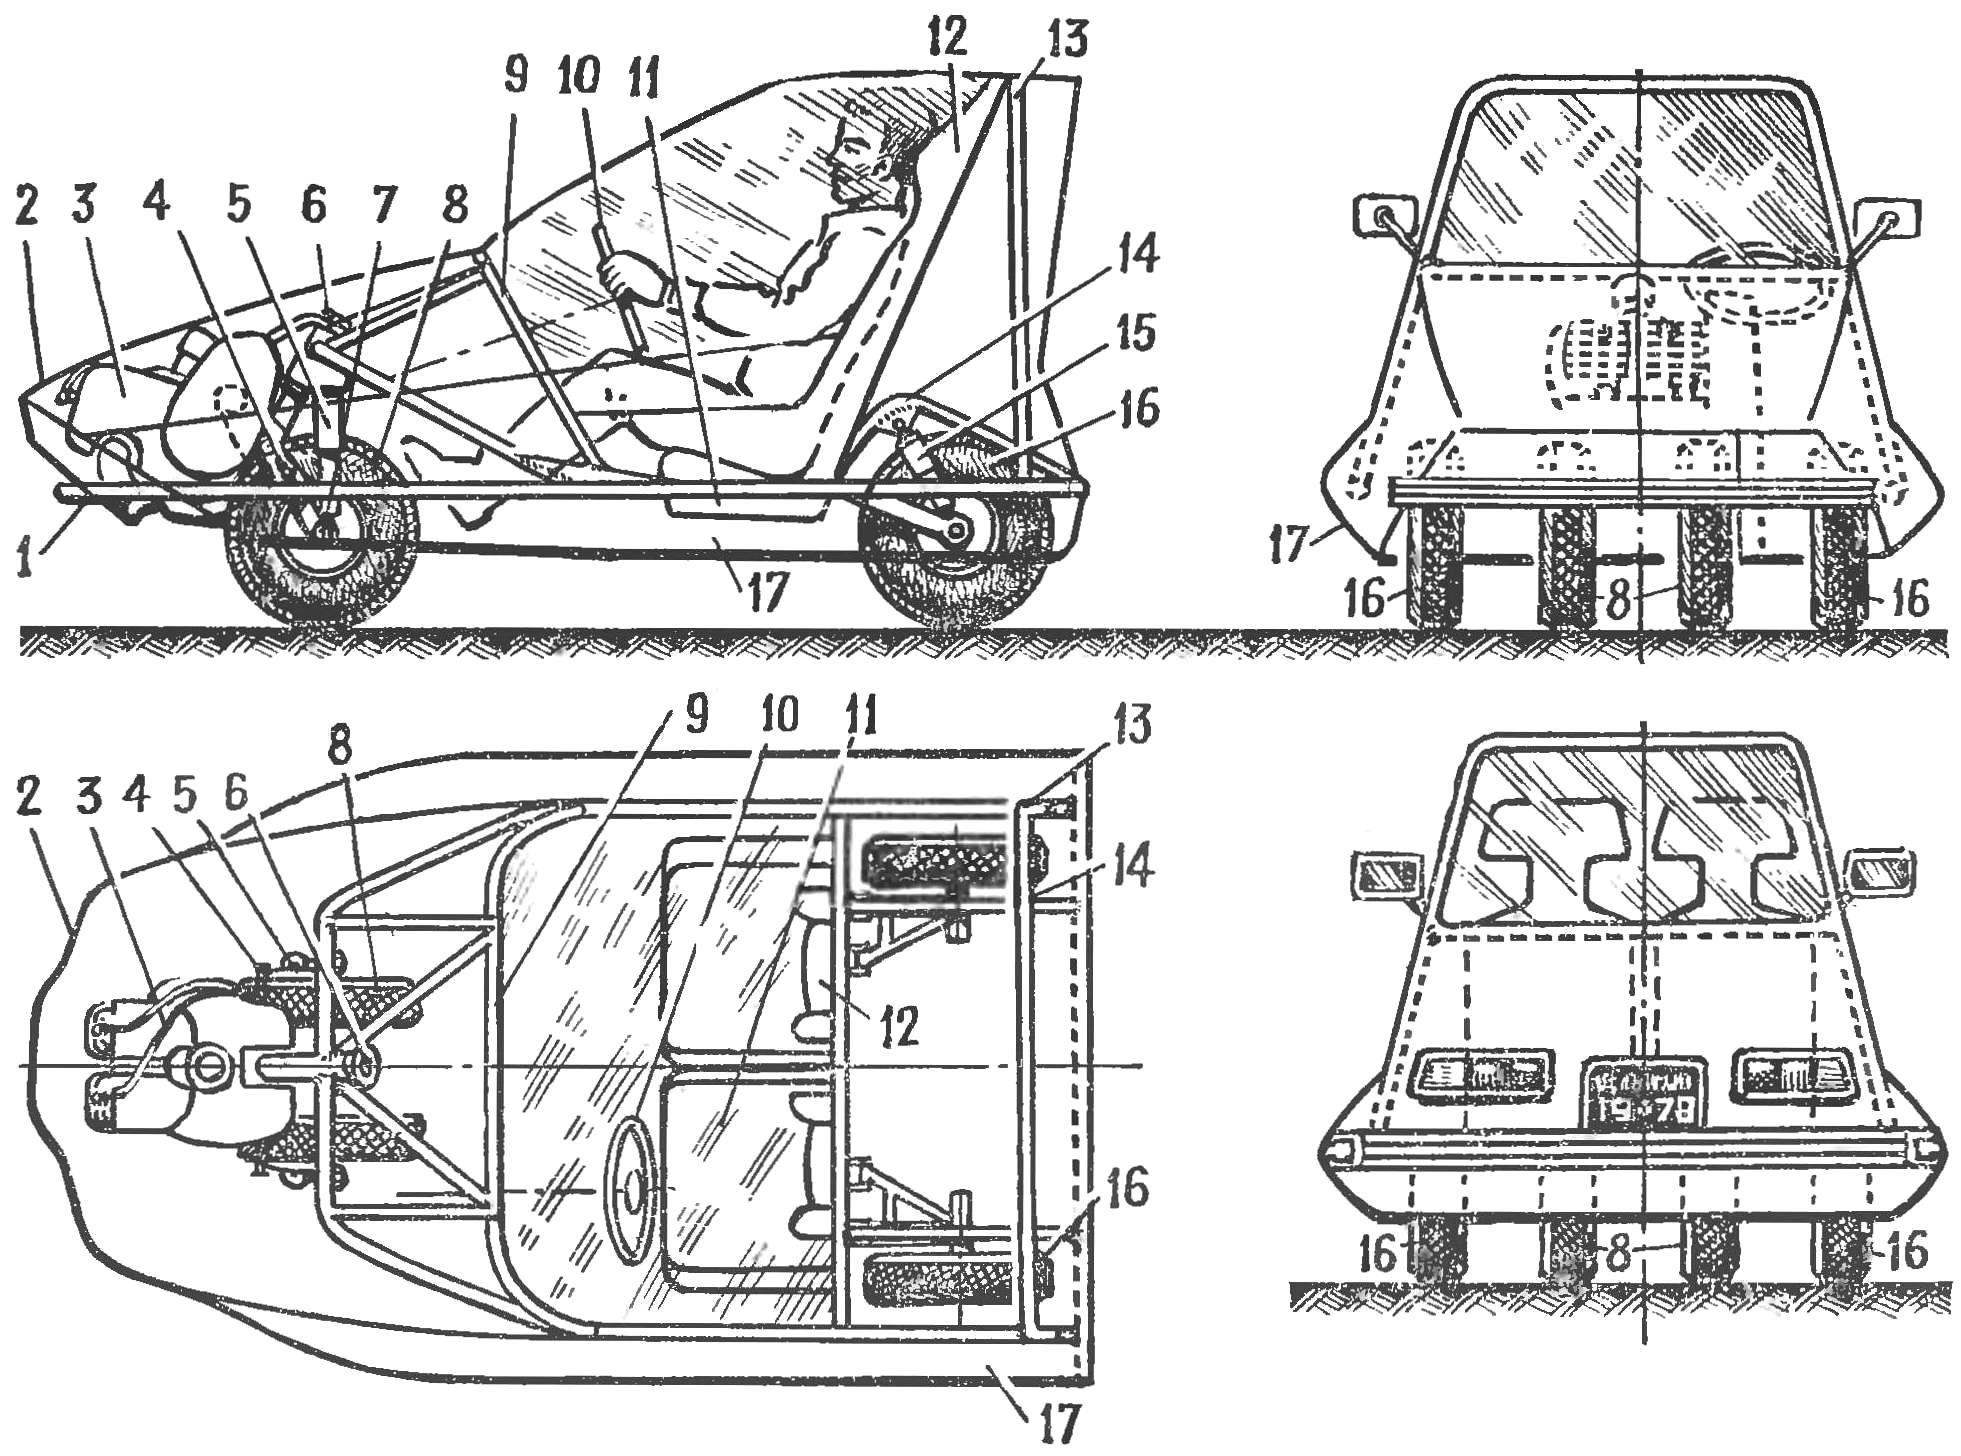 Diagram of the micro-car, only